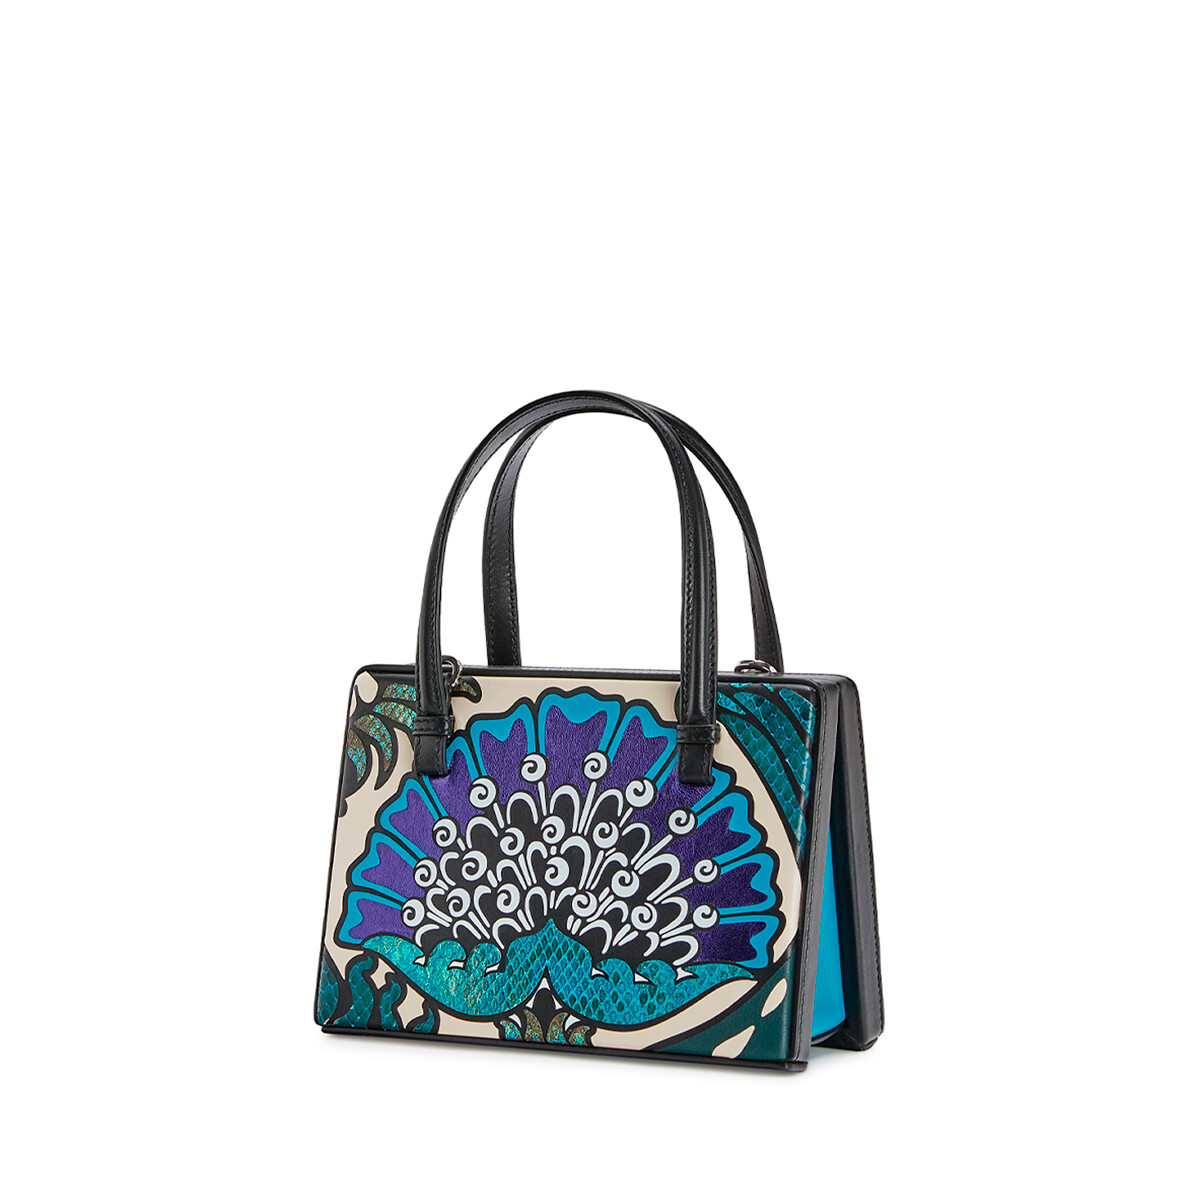 LOEWE Postal Floral Small Bag Peacock Blue front